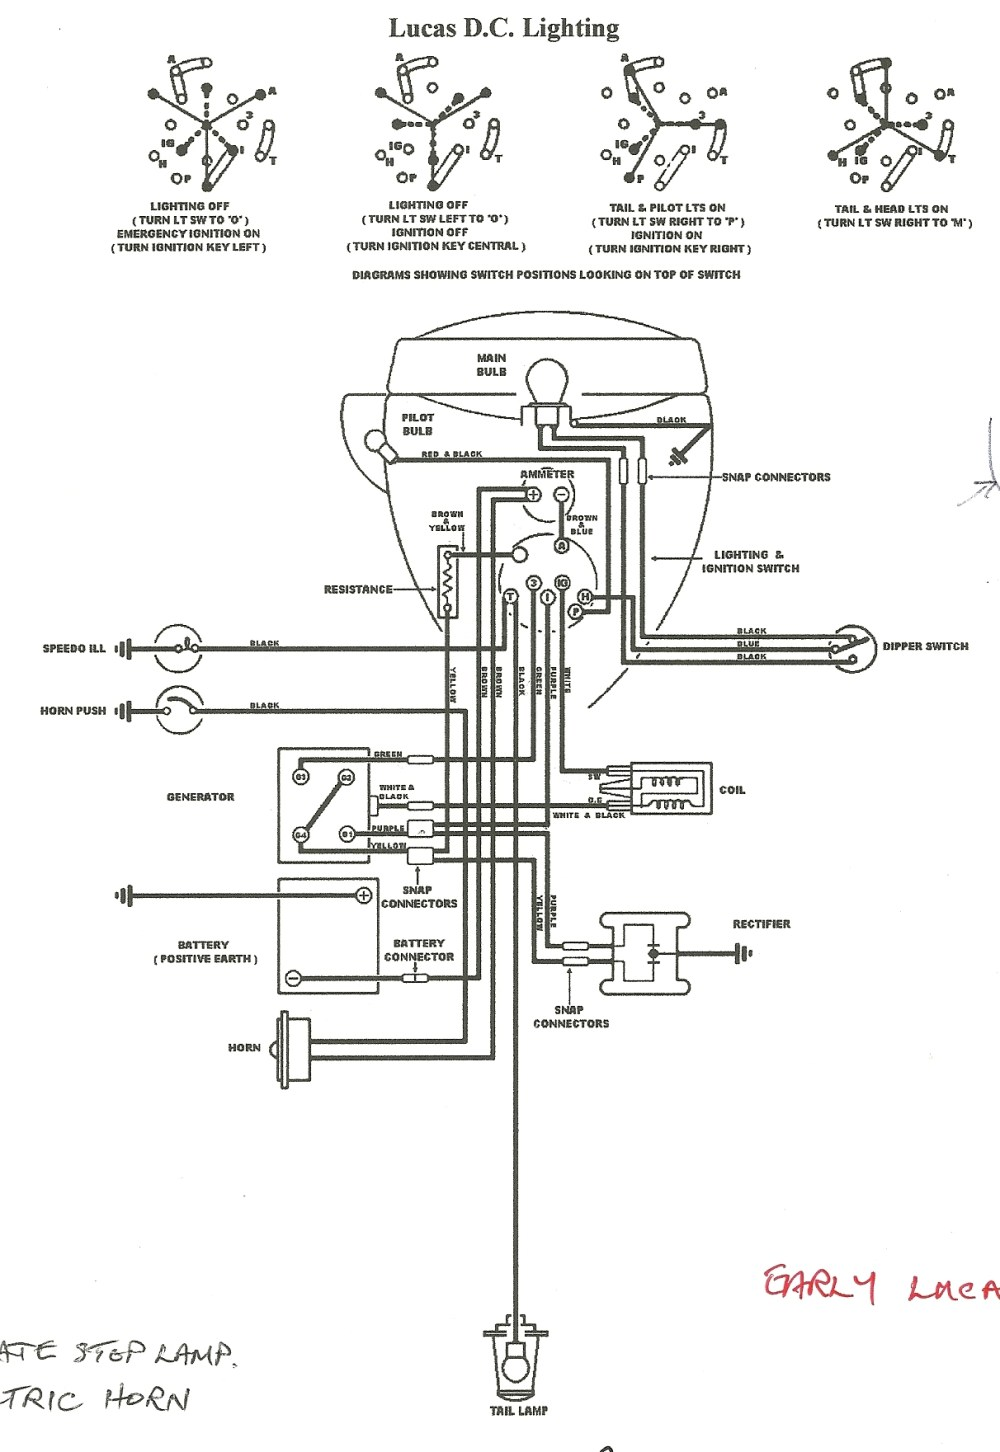 medium resolution of bantam d wiring diagram wiring diagram images wiring early lucas circuit modern rectifier and early lucas